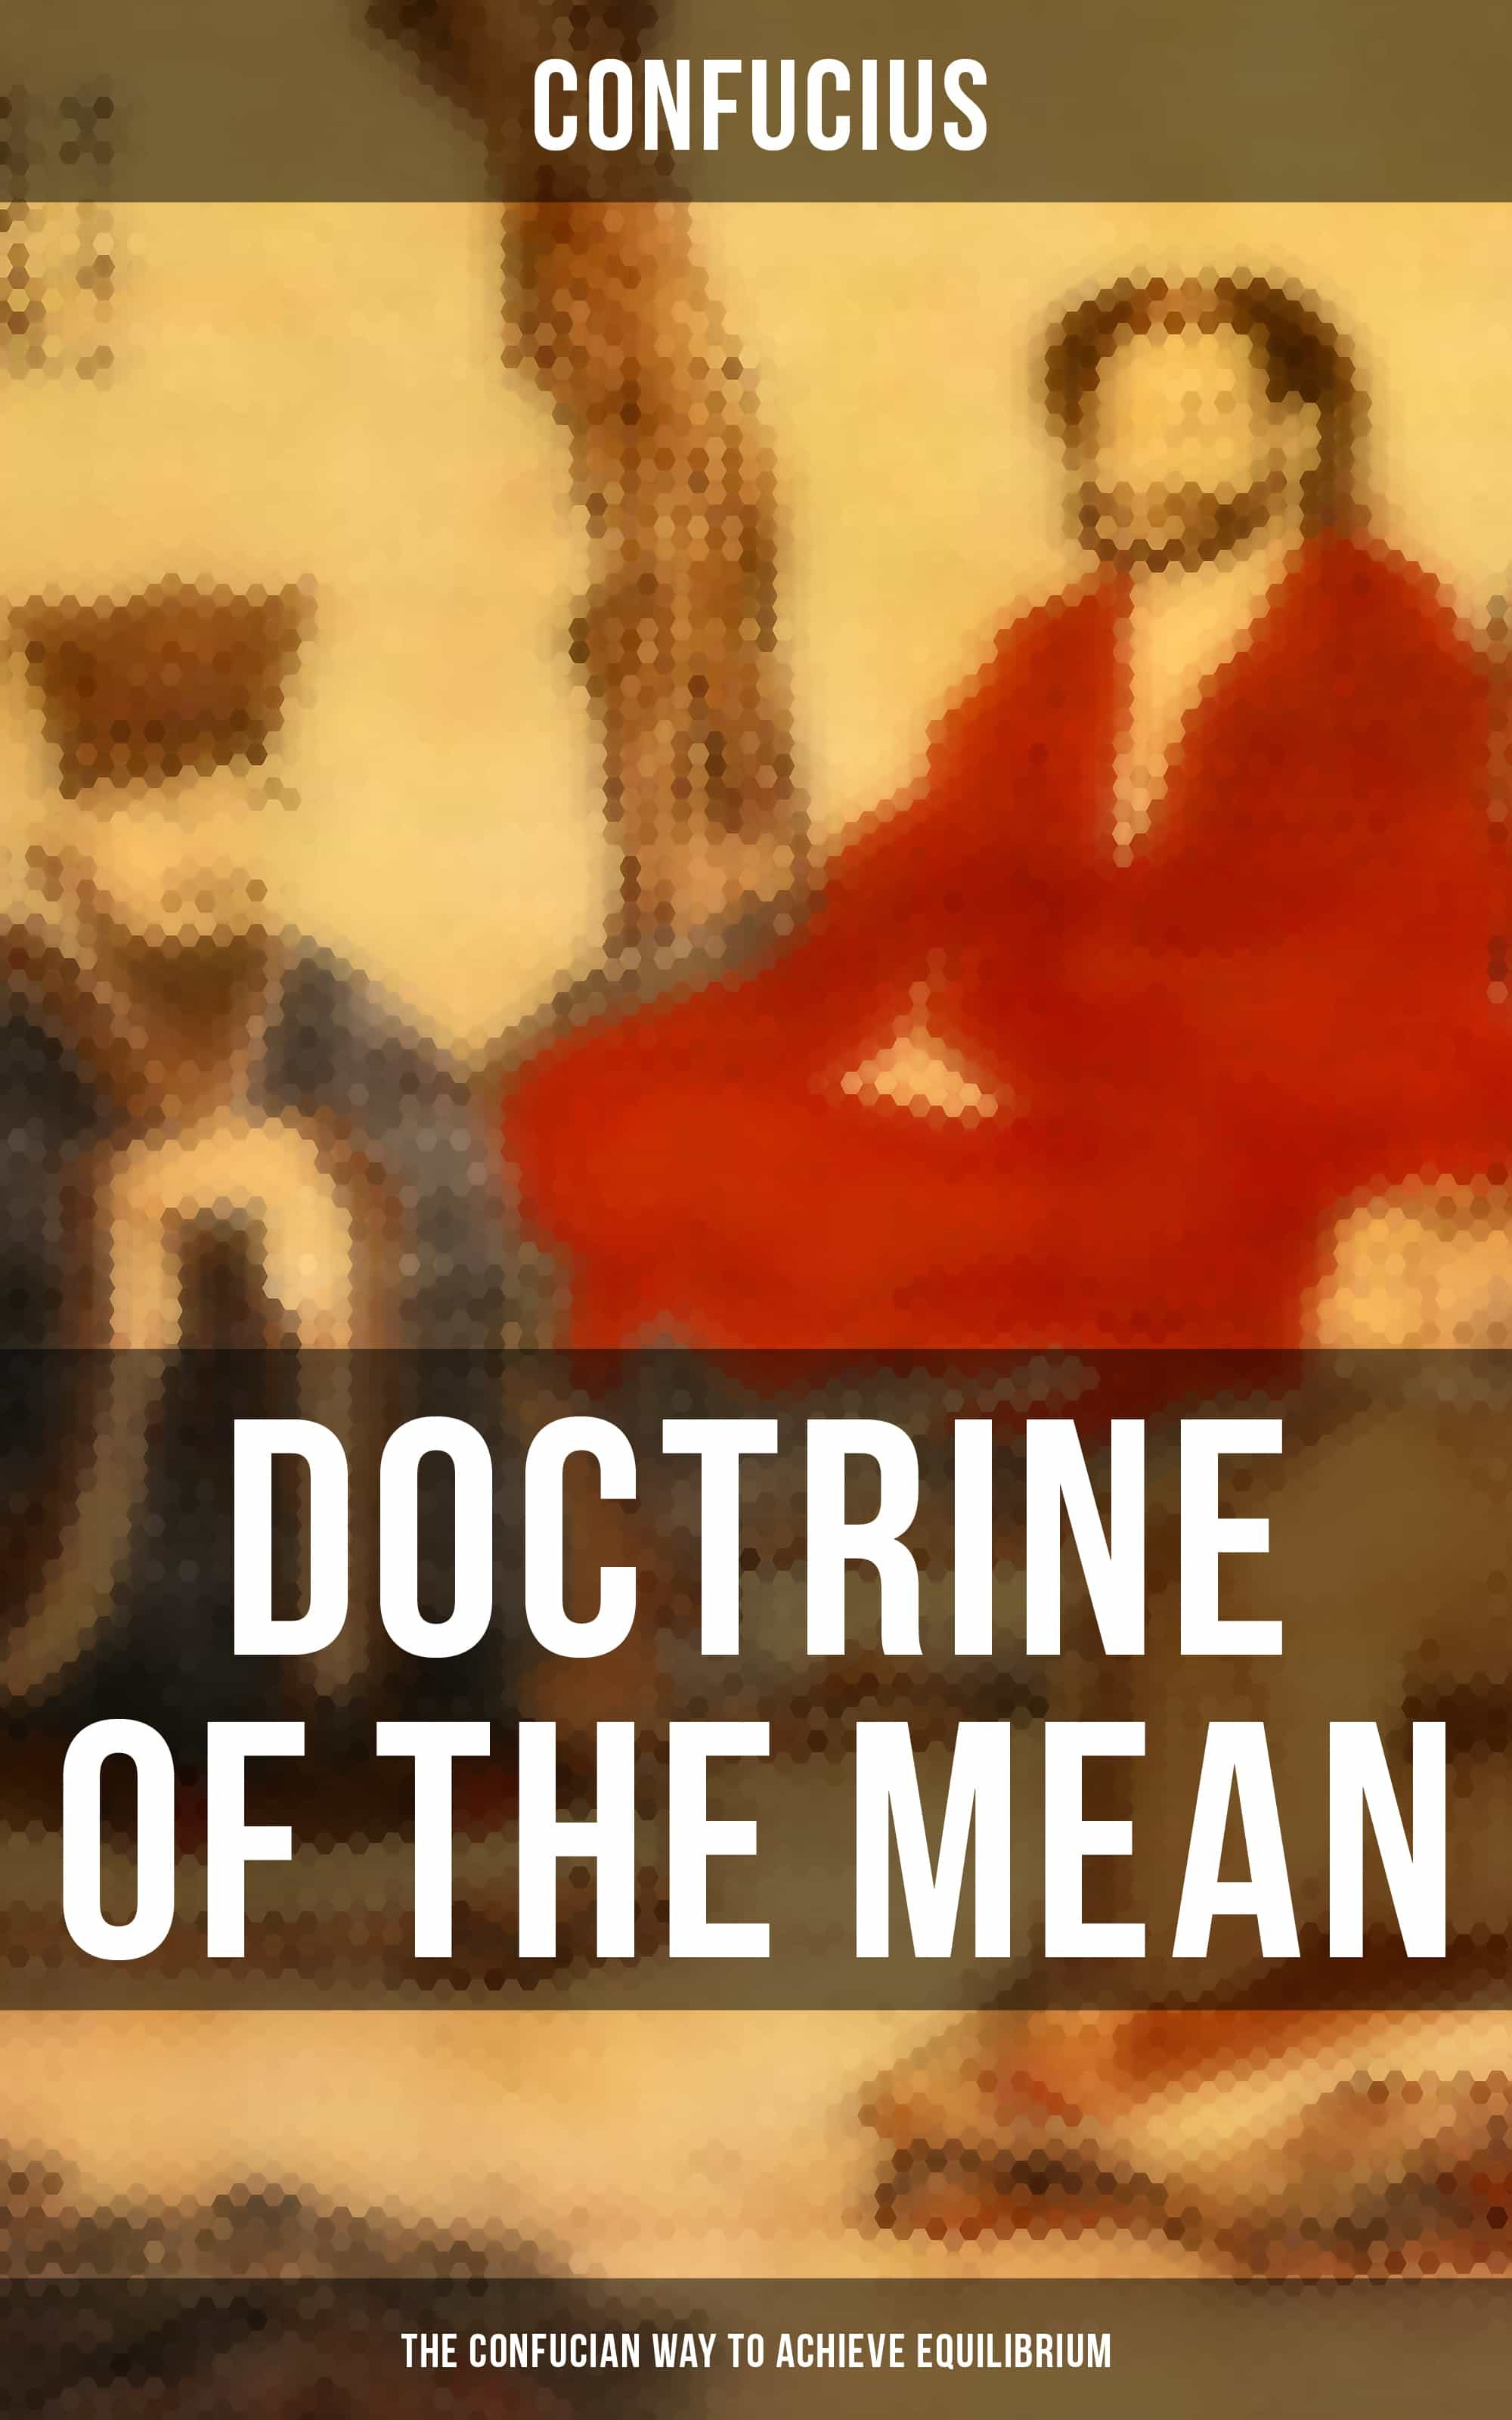 Doctrine Of The Mean (the Confucian Way To Achieve Equilibrium) Descargar EPUB Gratis